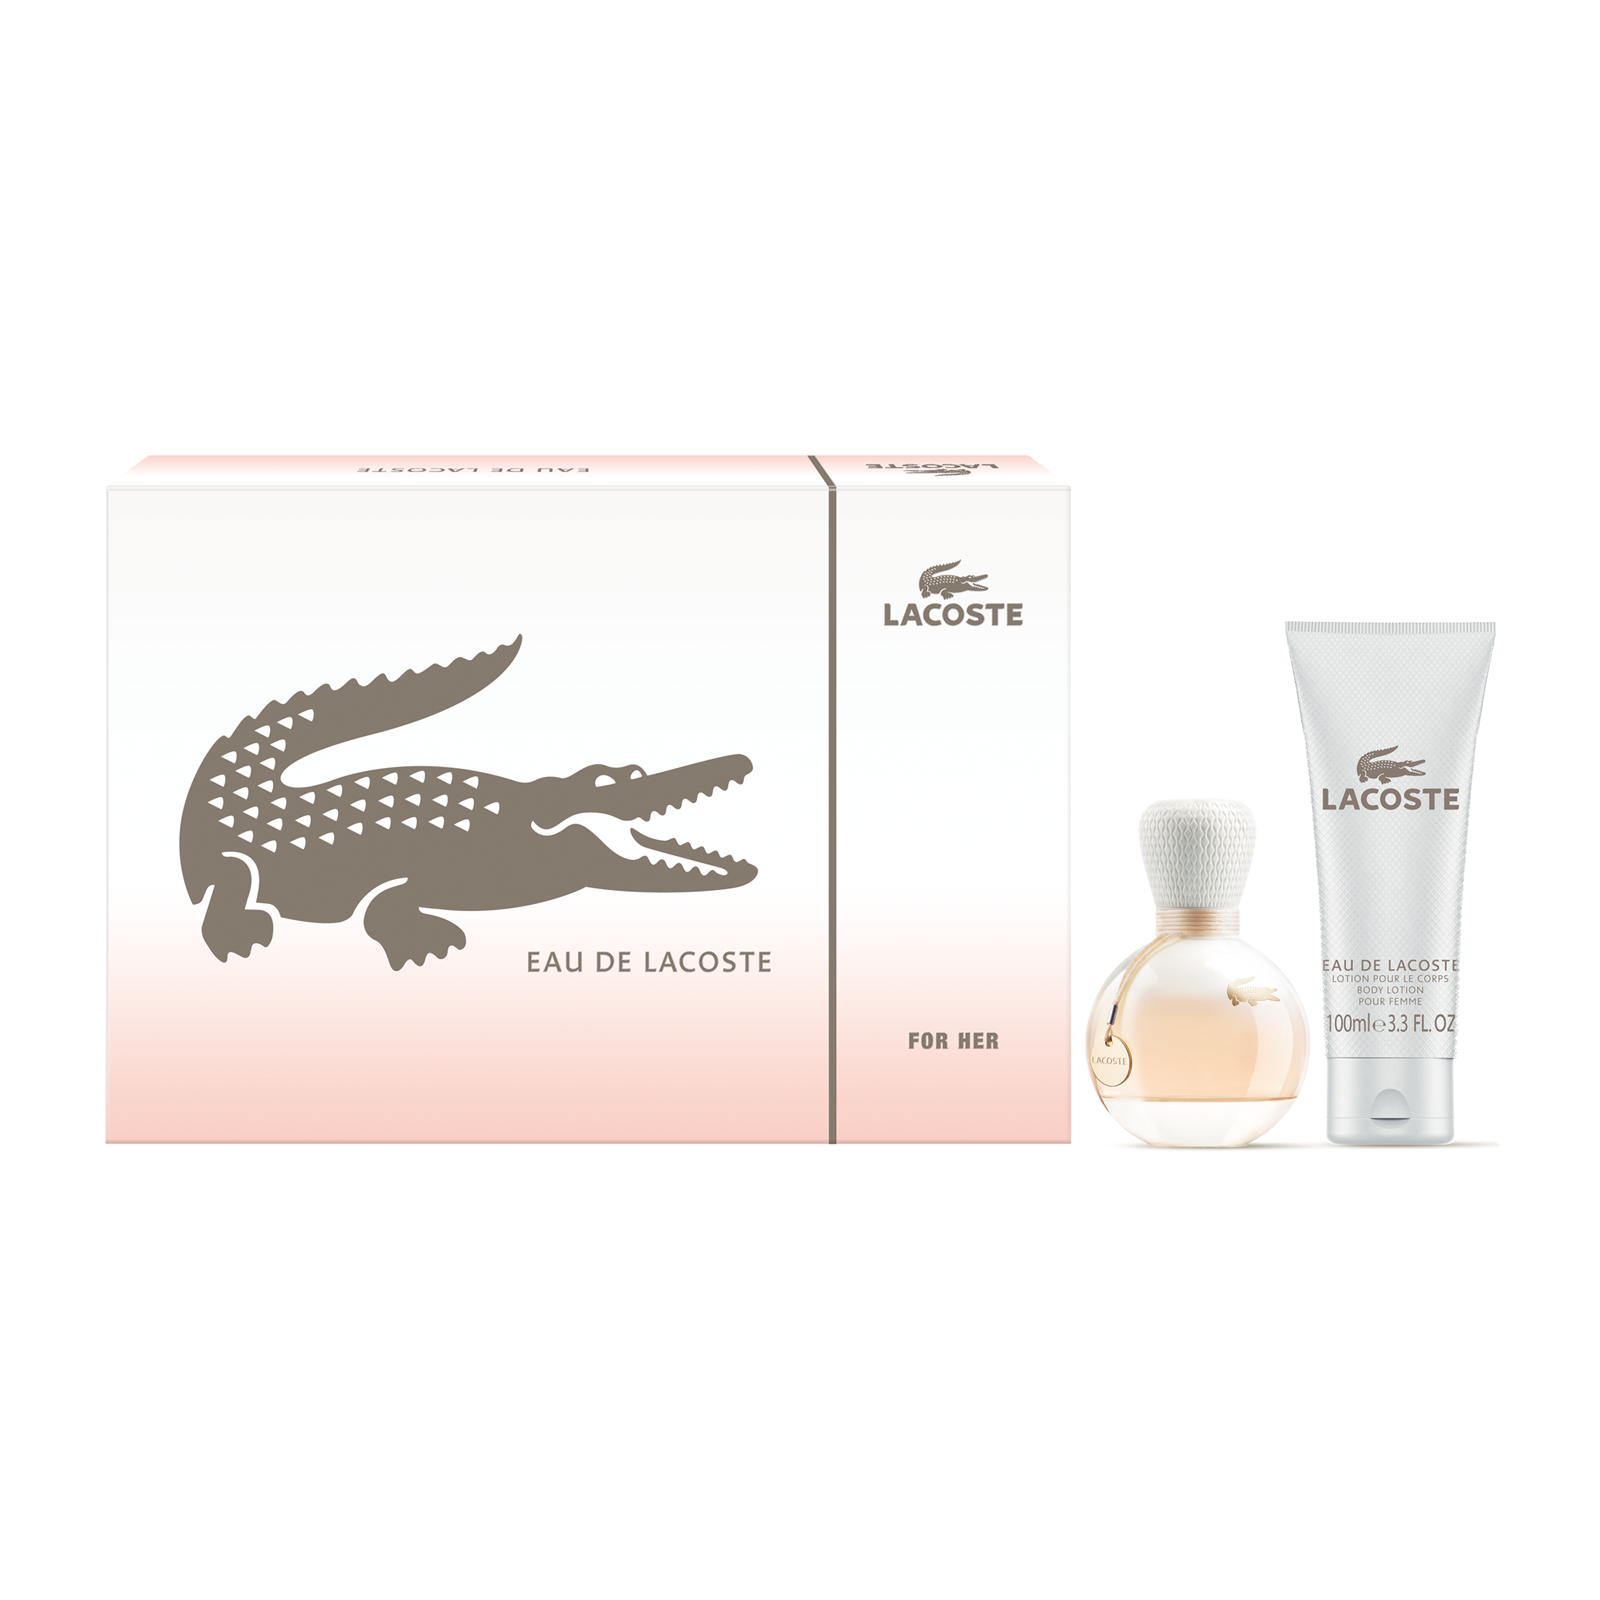 LACOSTE EAU DE LACOSTE 2 PCS SET: 3 OZ EDT SP + 3.4 BODY LOTION